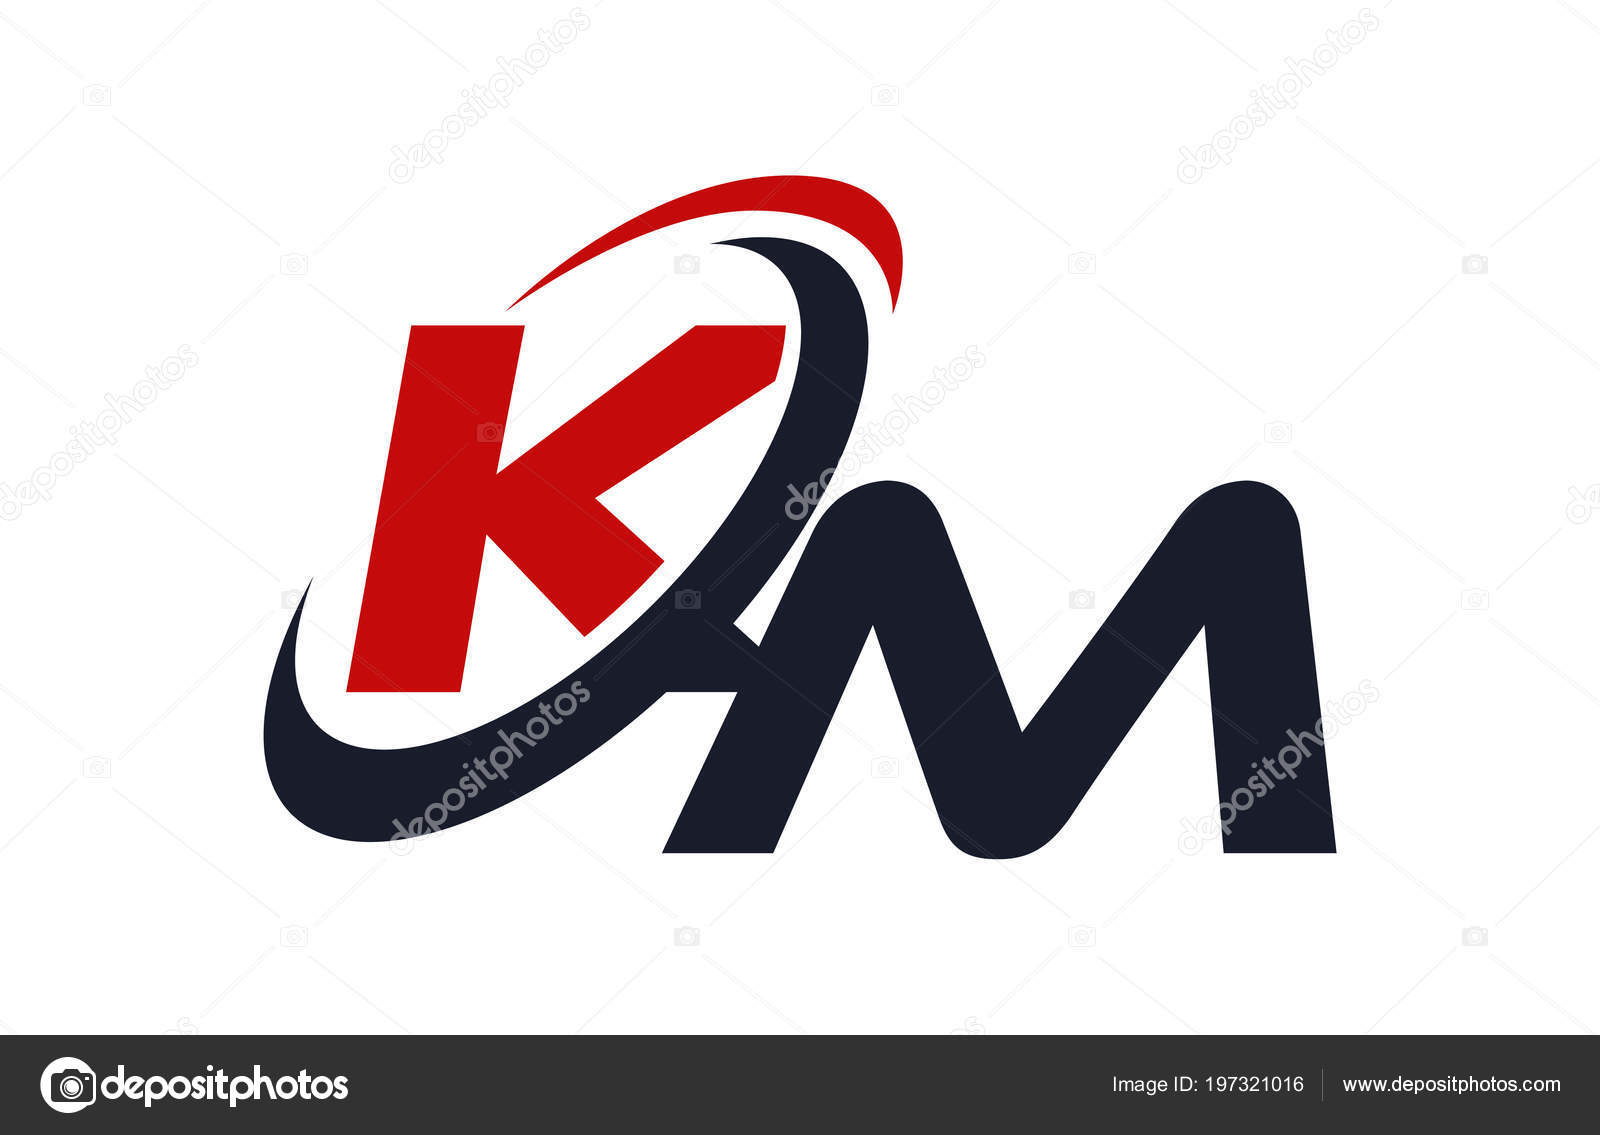 logo km 22000+ of logo designs price◥◣$48◢◤ providing buy/purchase logo, logo design services, logo inspiration buying logo we have tens of thousands of corporate logos that can bought instantly.